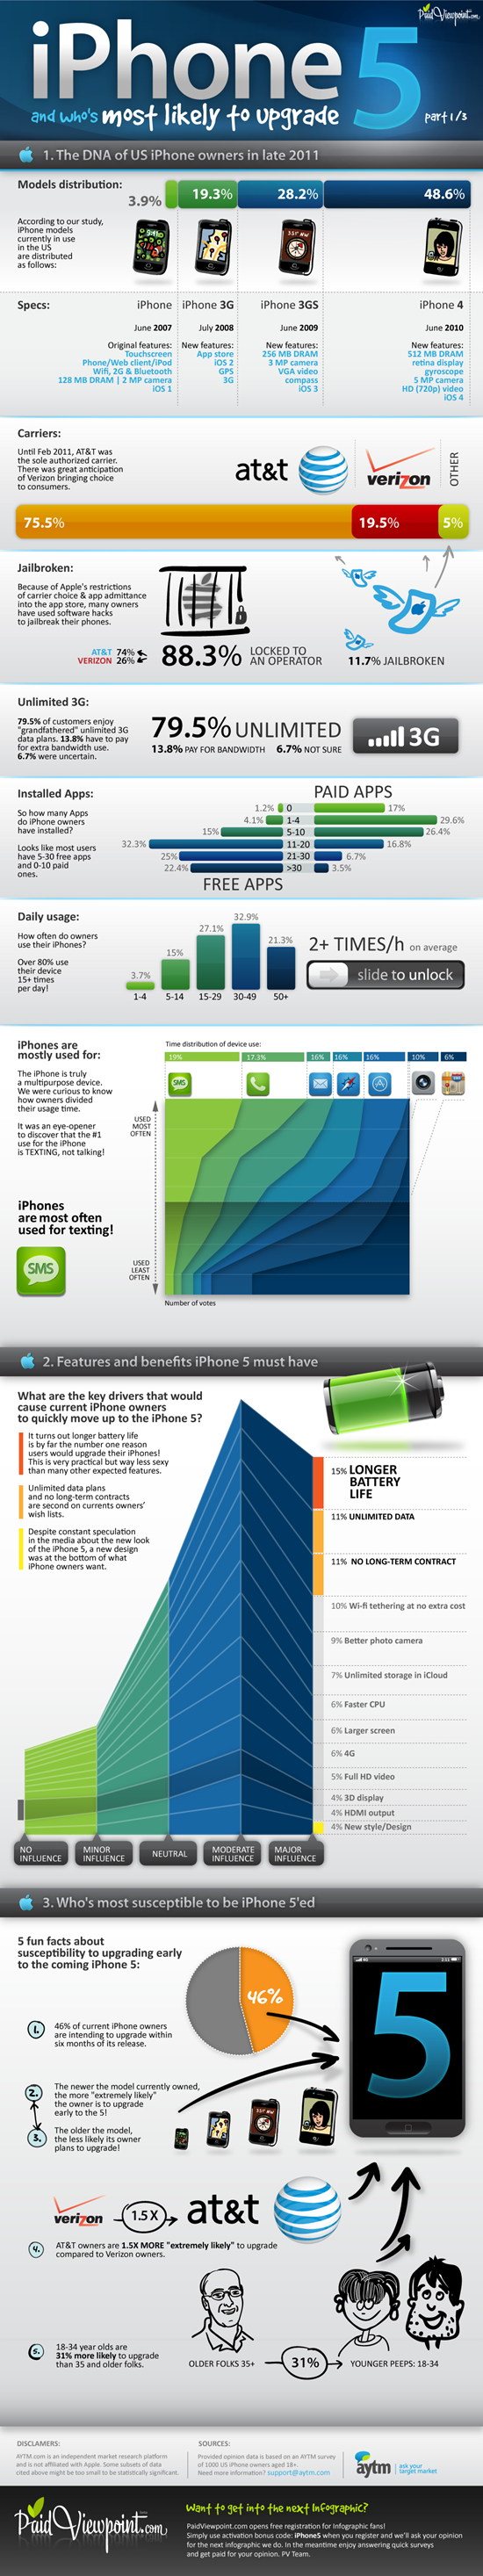 iphone5-Infographic_3_parts-01